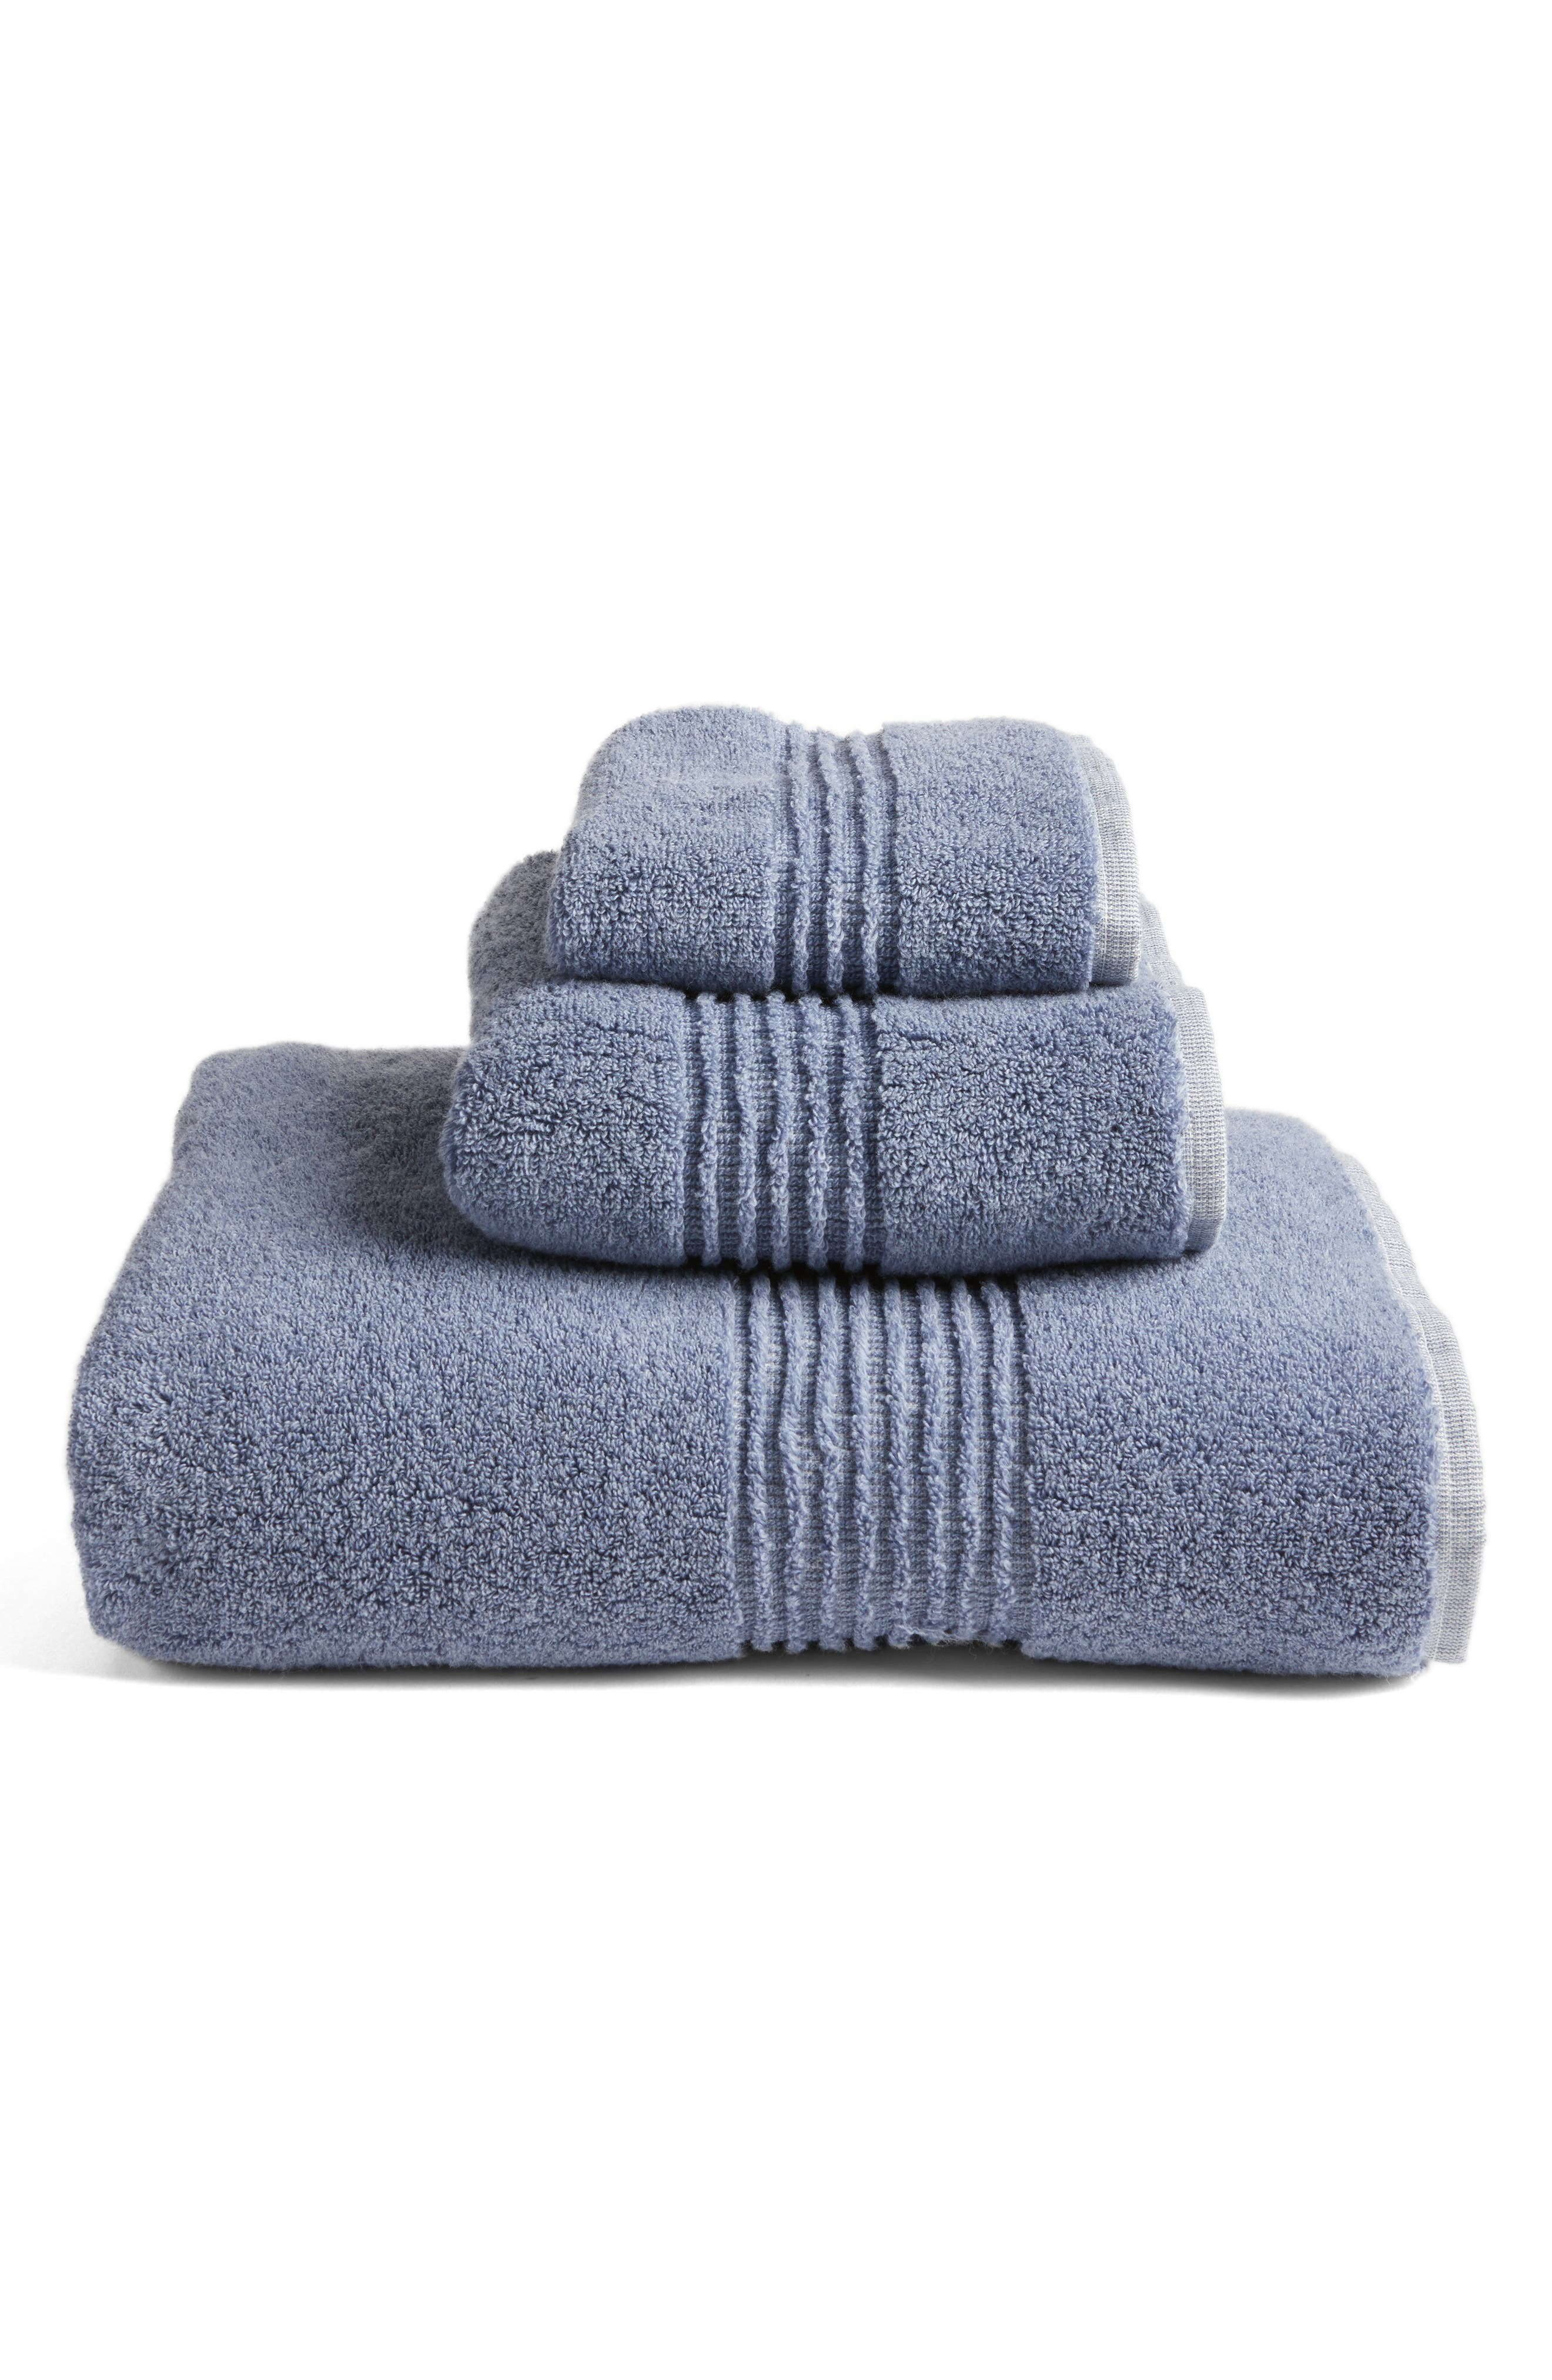 Alternate Image 3  - Nordstrom at Home Organic Hydrocotton Heathered Bath Towel (2 for $49)